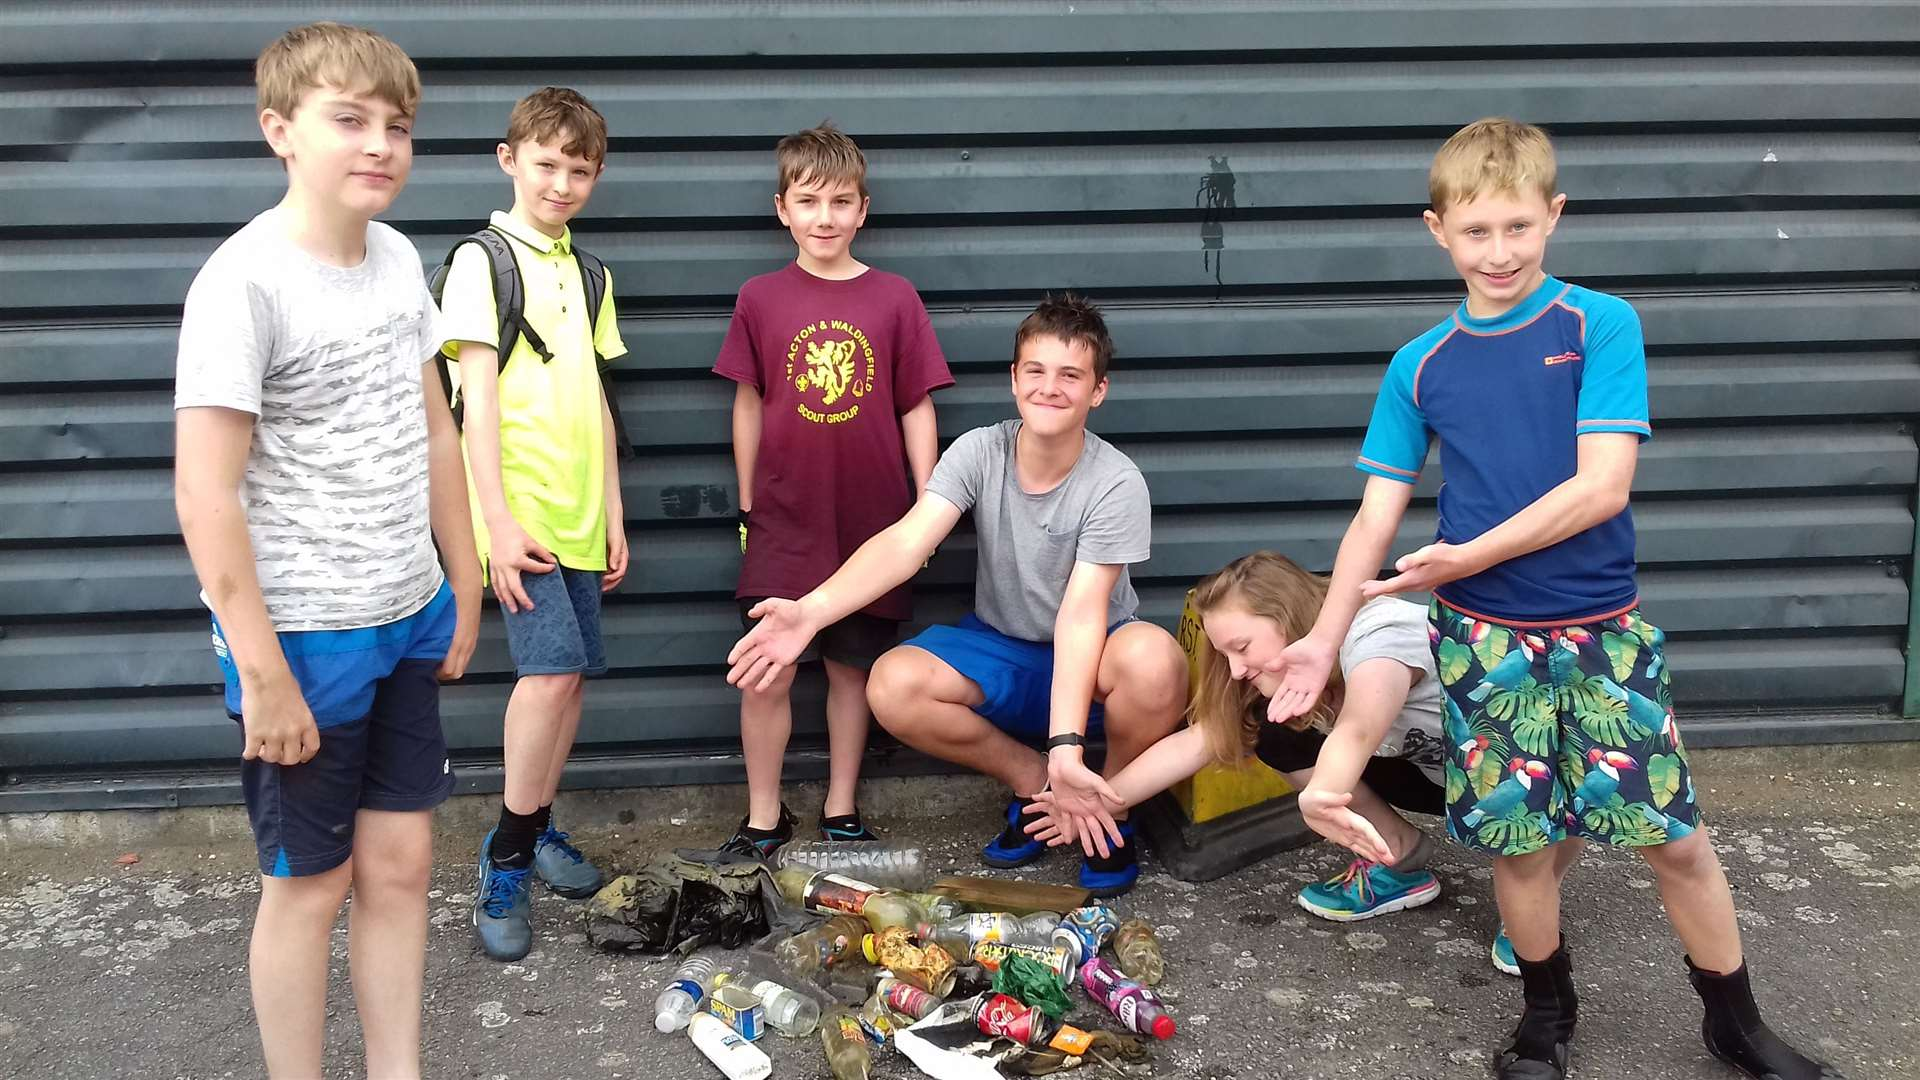 Members of the 1st Acton and Waldingfield scouts collected discarded litter while on a canoe trip on the River Stour. (14970998)